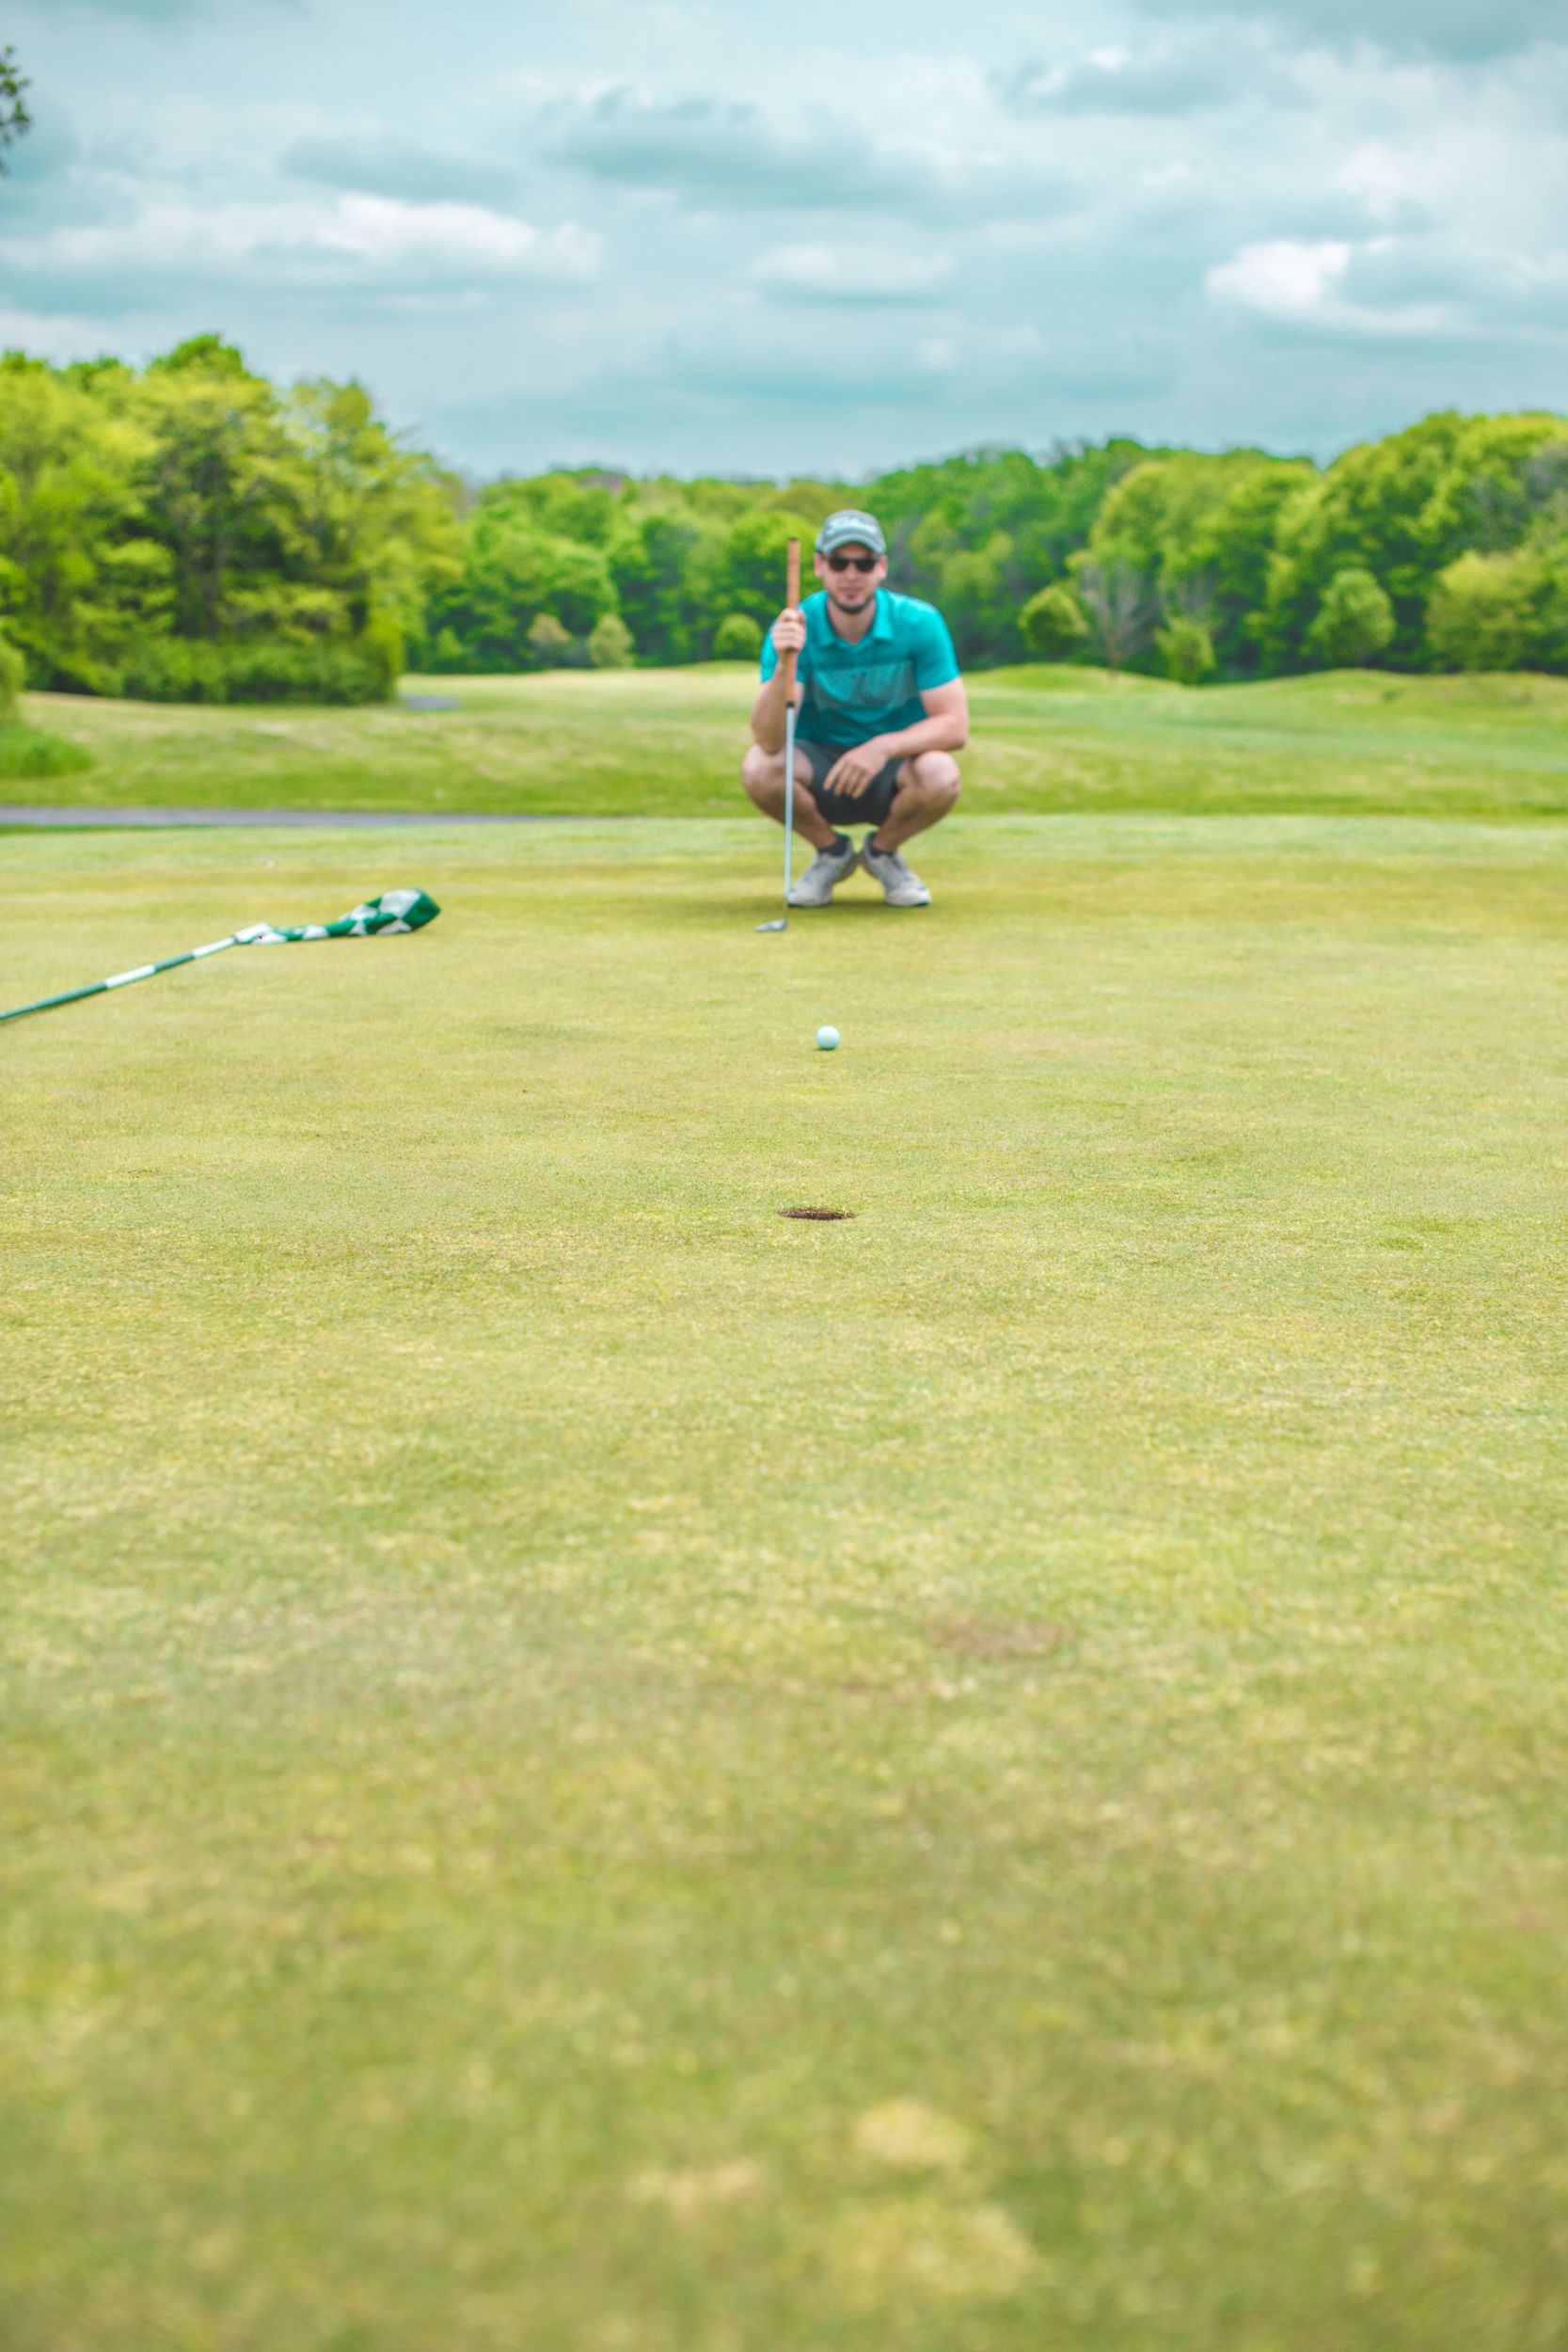 A golfer reading greens to get ready for a putt